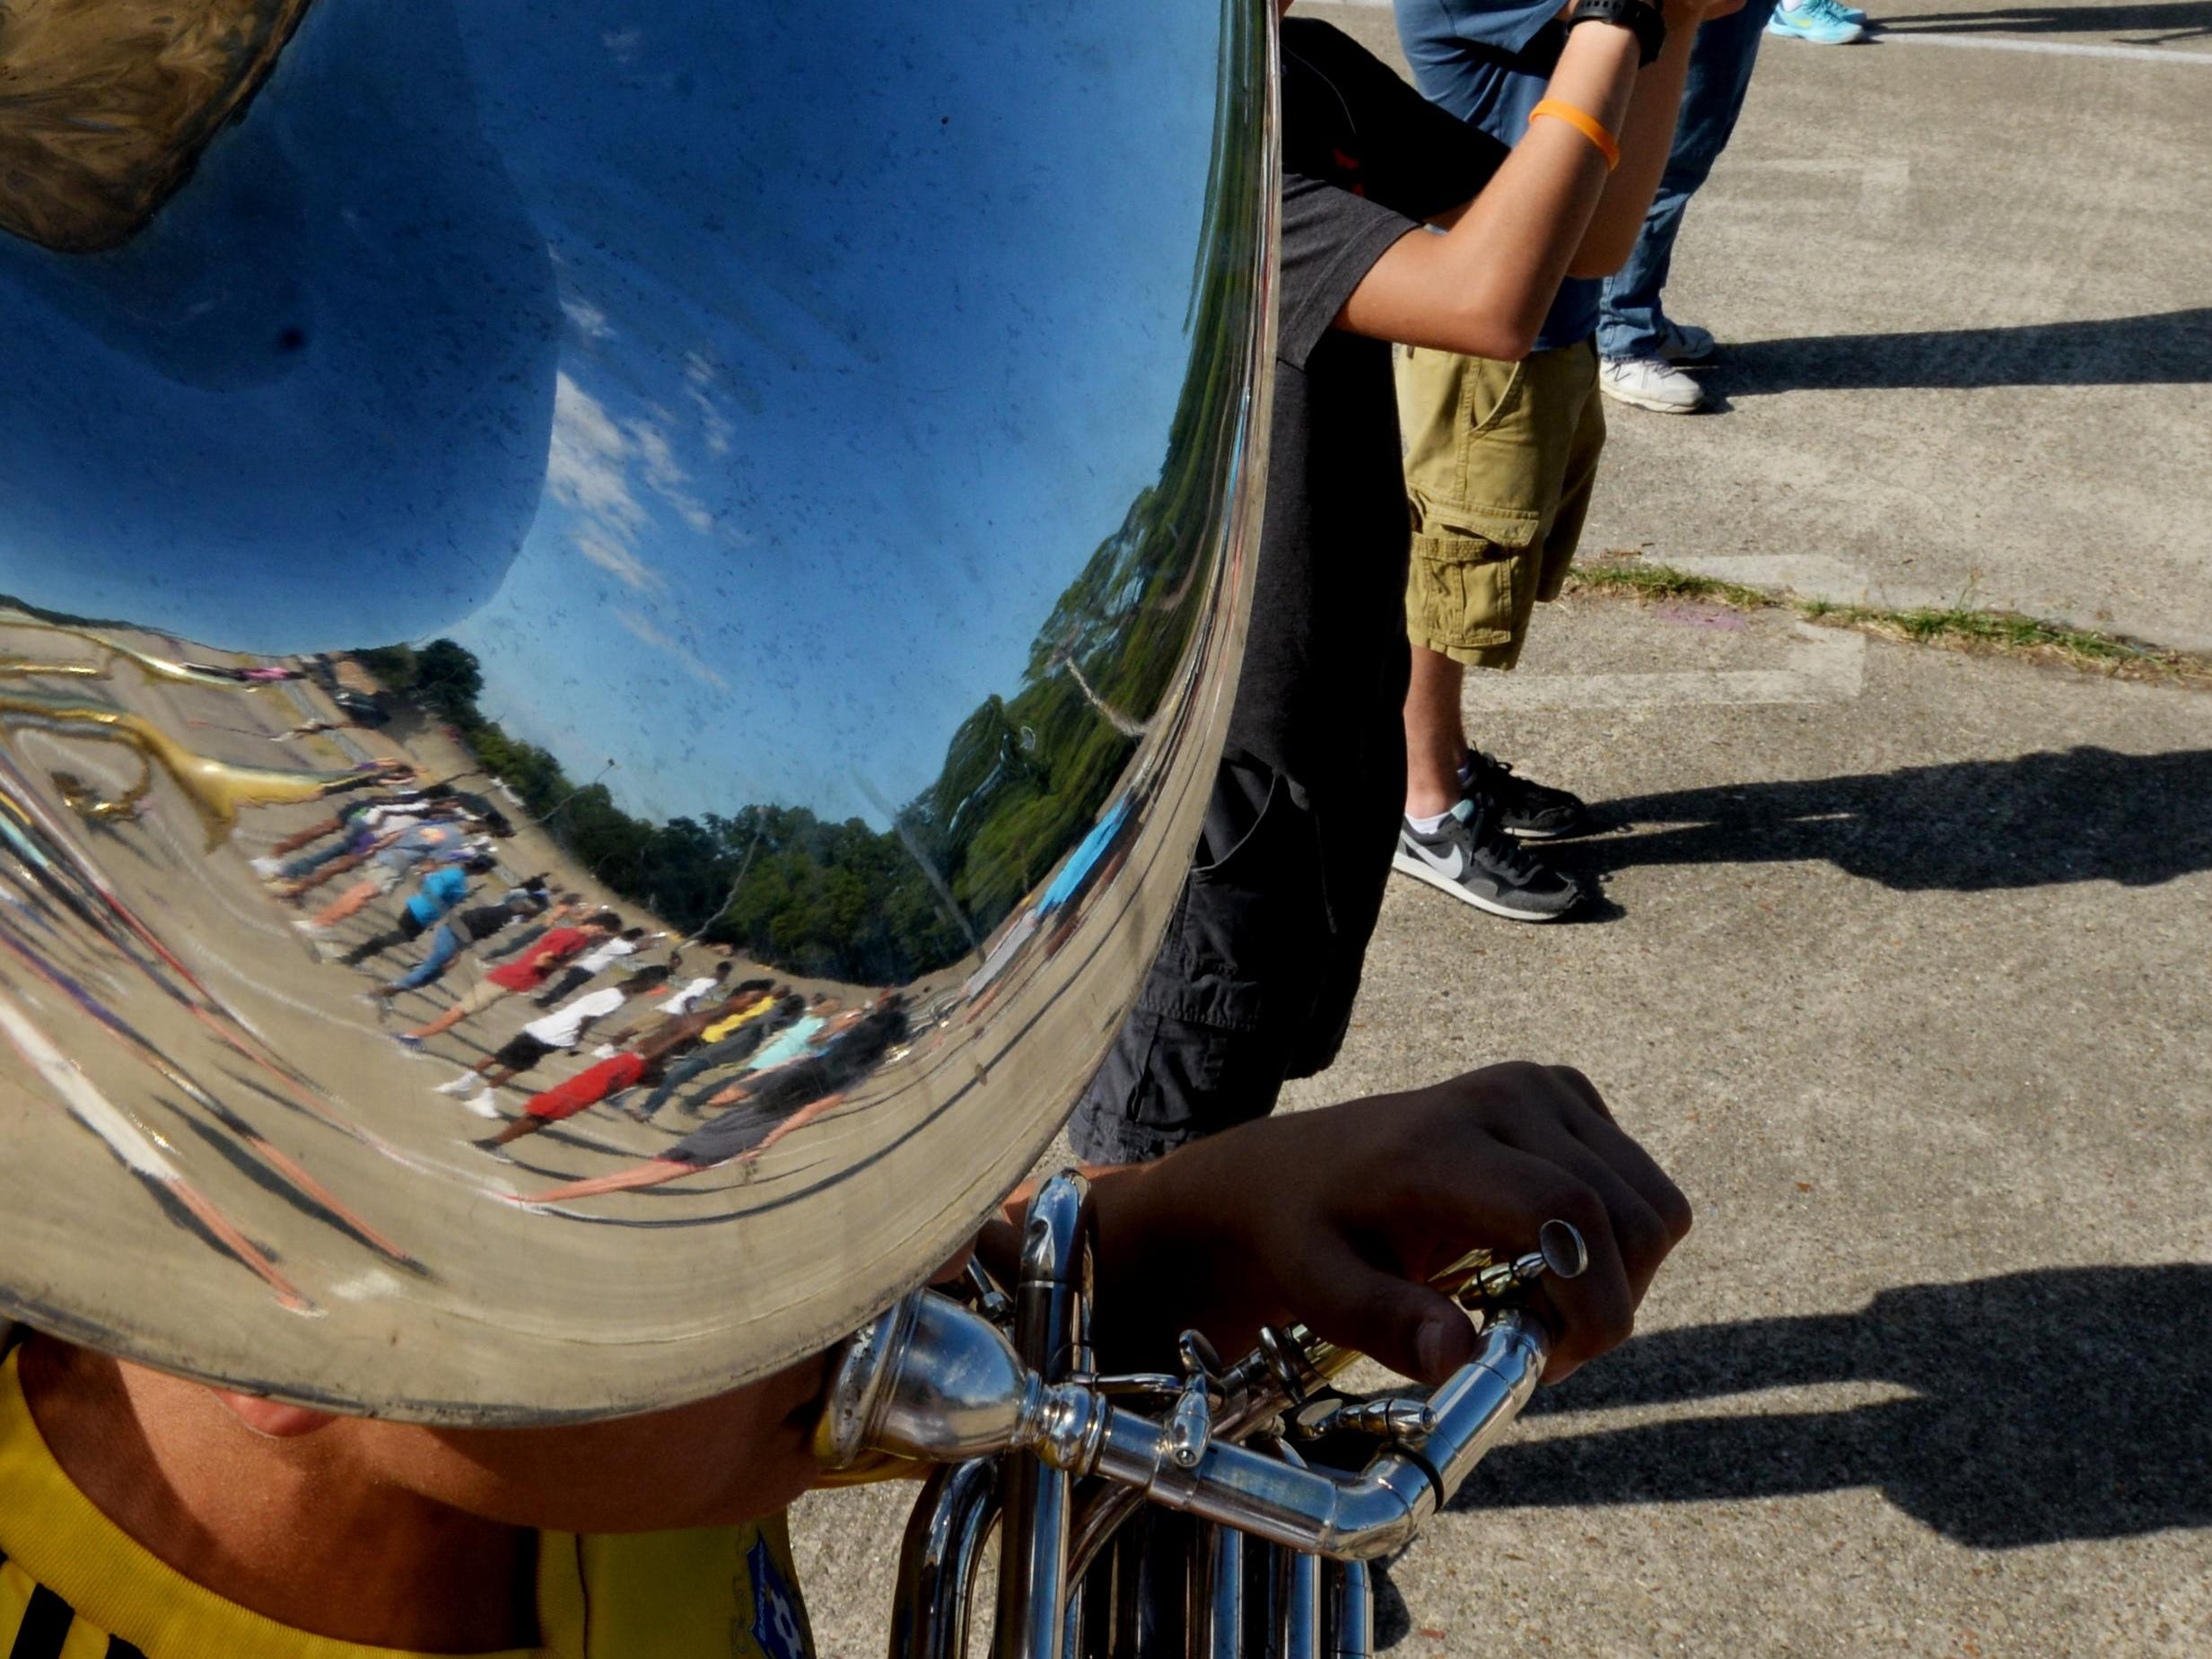 A reflection of Byrd's marching band can be seen in the sousaphone.